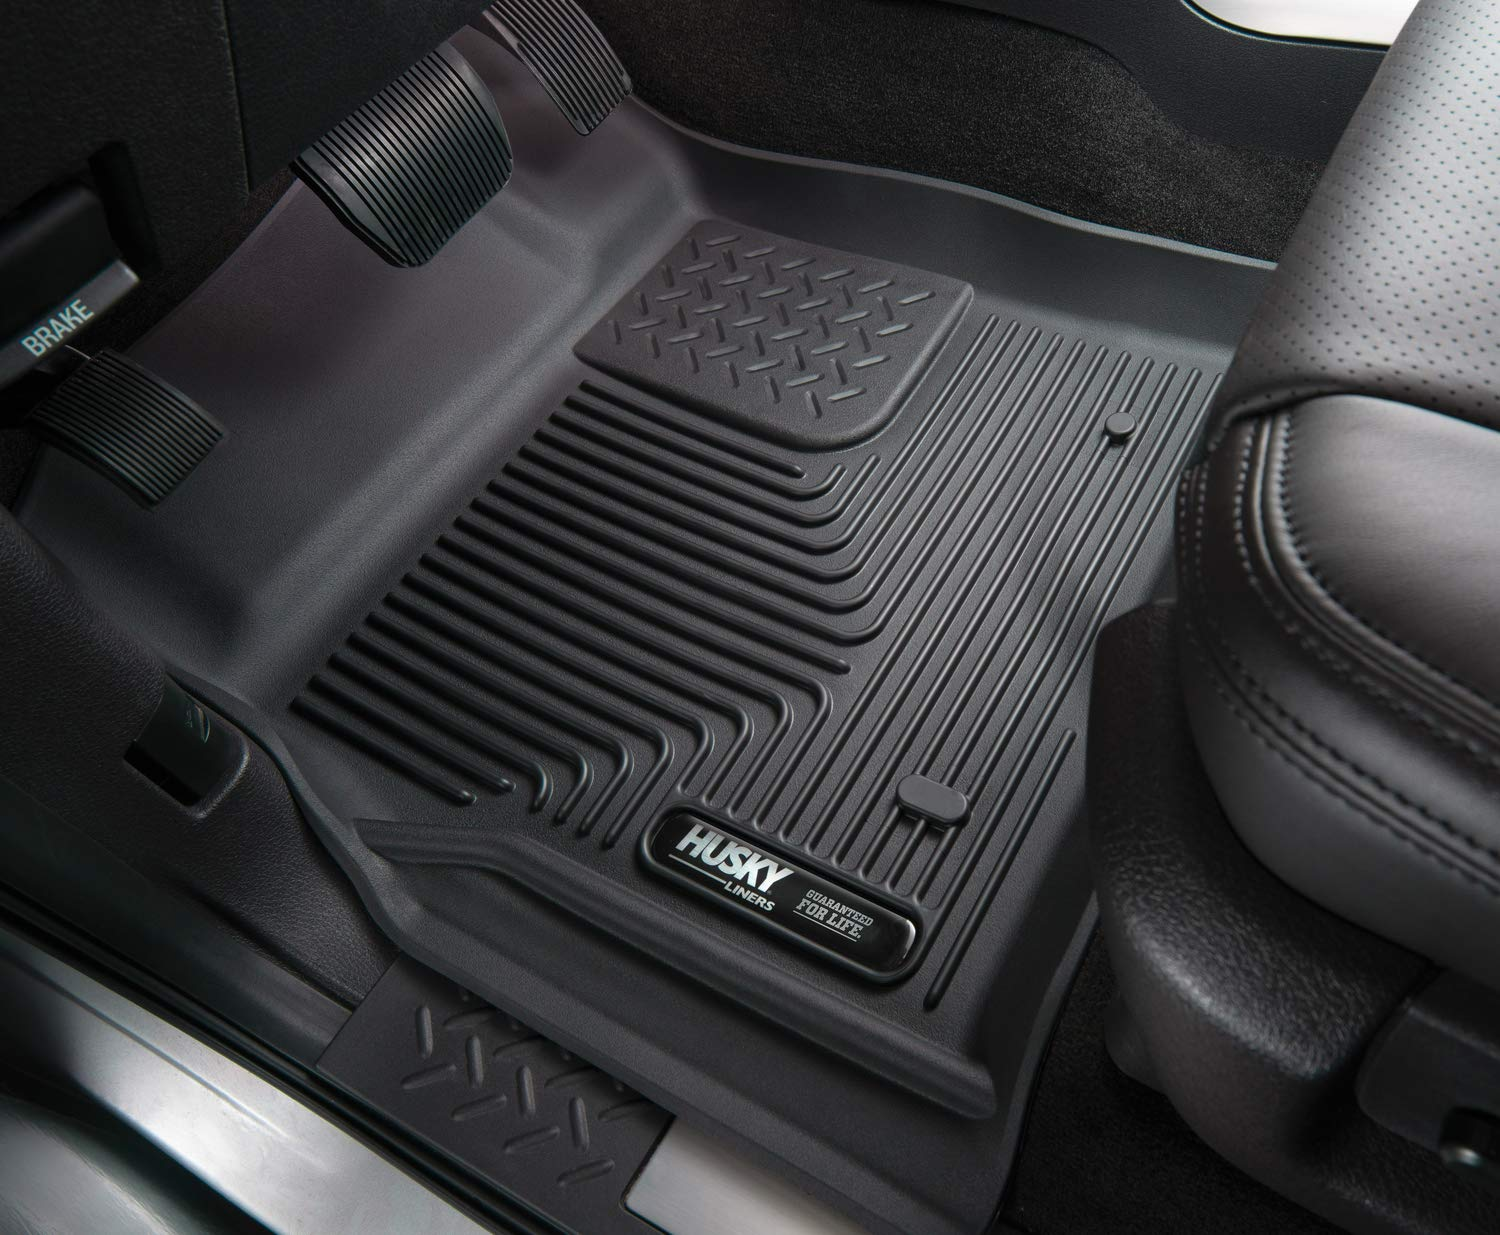 Husky Liners 52271 Black Front Floor Liners Fits 16-18 Chevrolet Malibu by Husky Liners (Image #2)